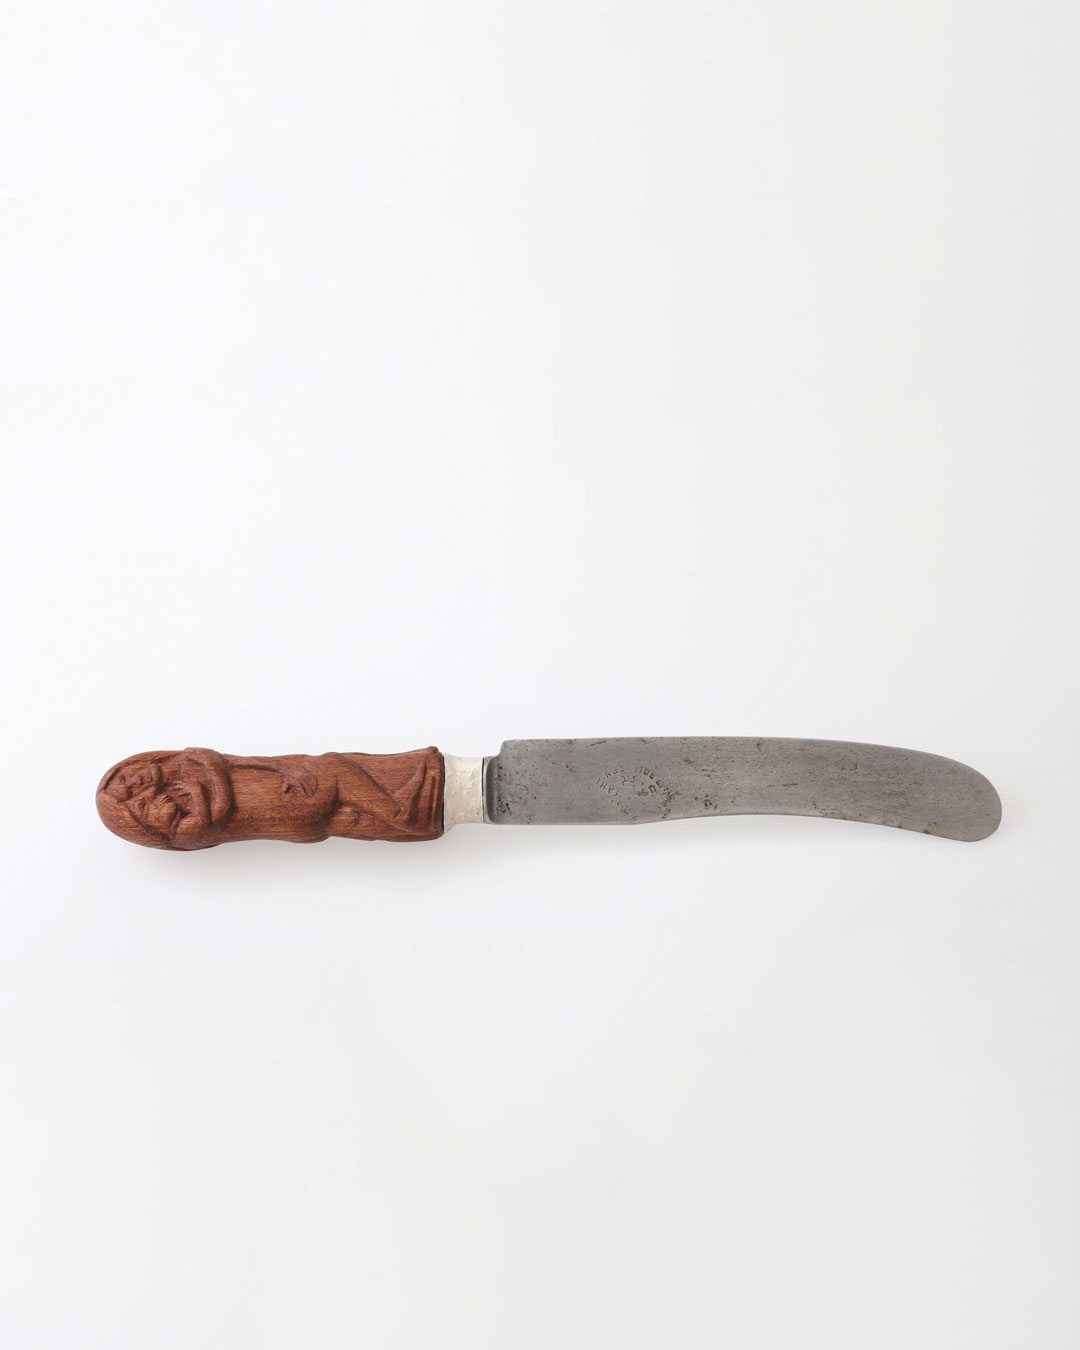 Juliane Brandes, untitled, 2017, knife; palisander wood, silver, steel (1880) blade, 220 x 25 mm, €2060